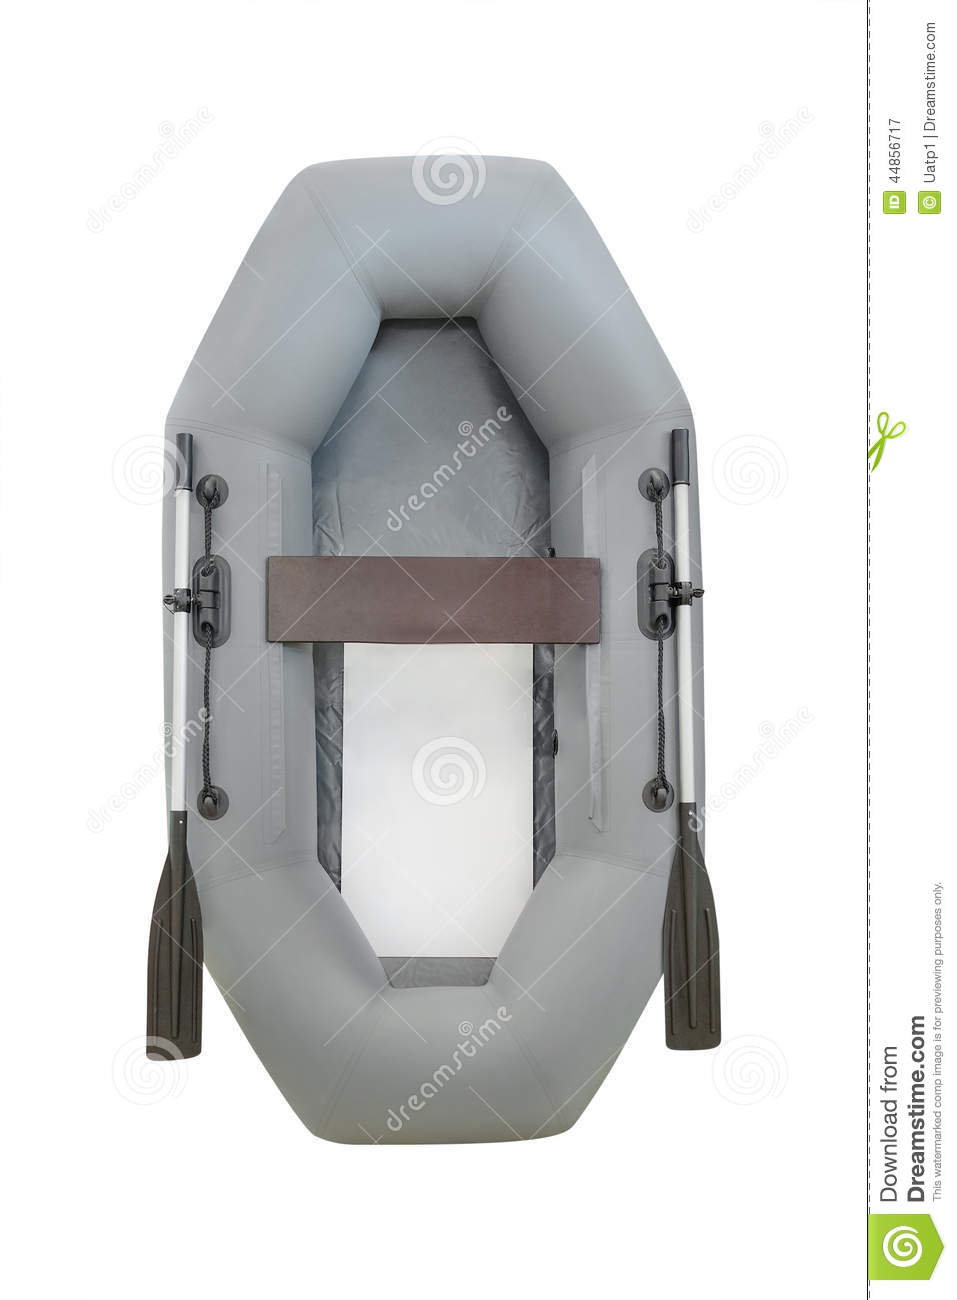 Imagen del barco inflable